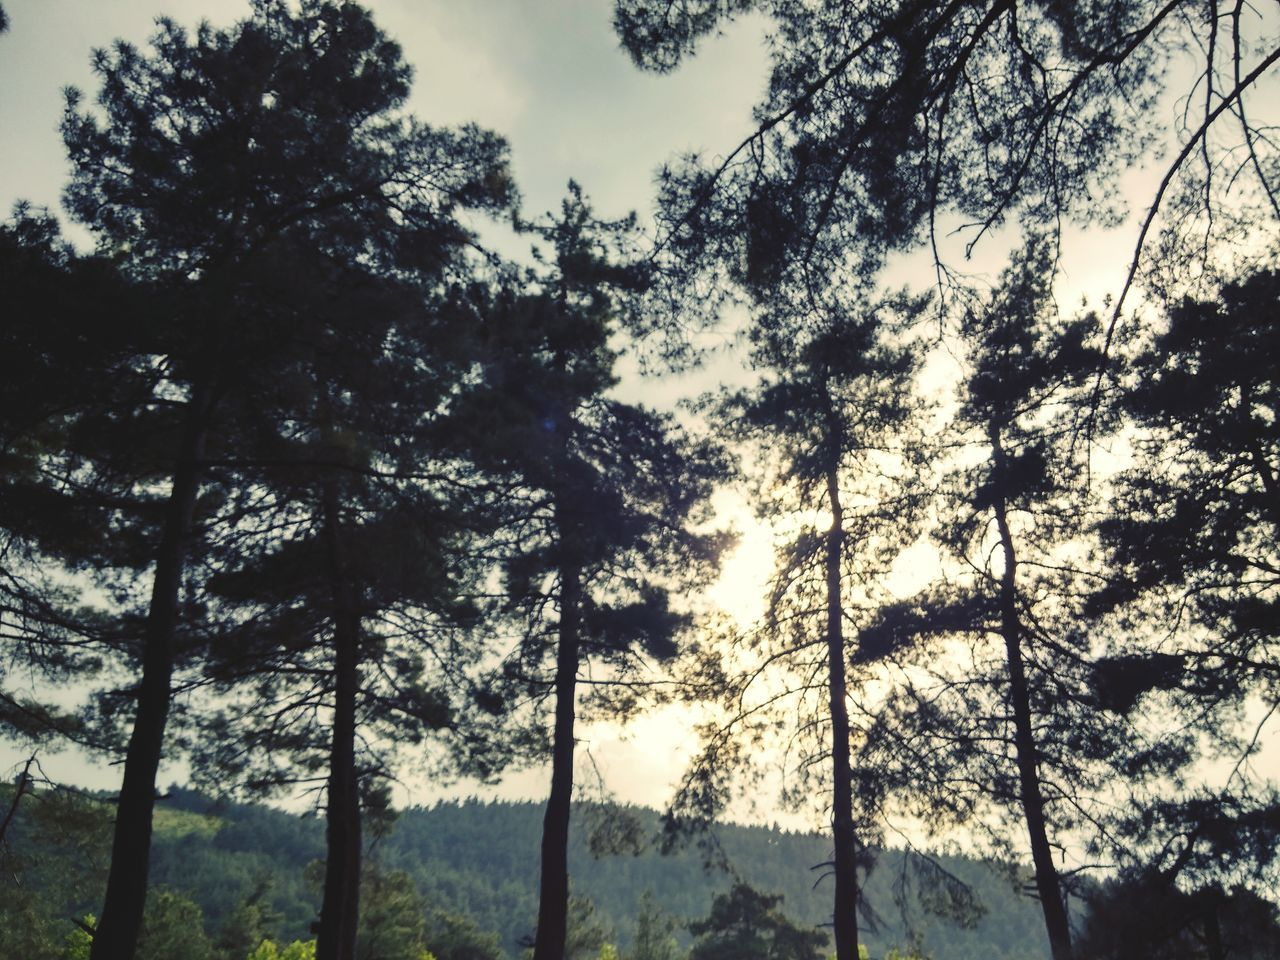 tree, nature, forest, low angle view, growth, no people, beauty in nature, sky, outdoors, day, tranquility, scenics